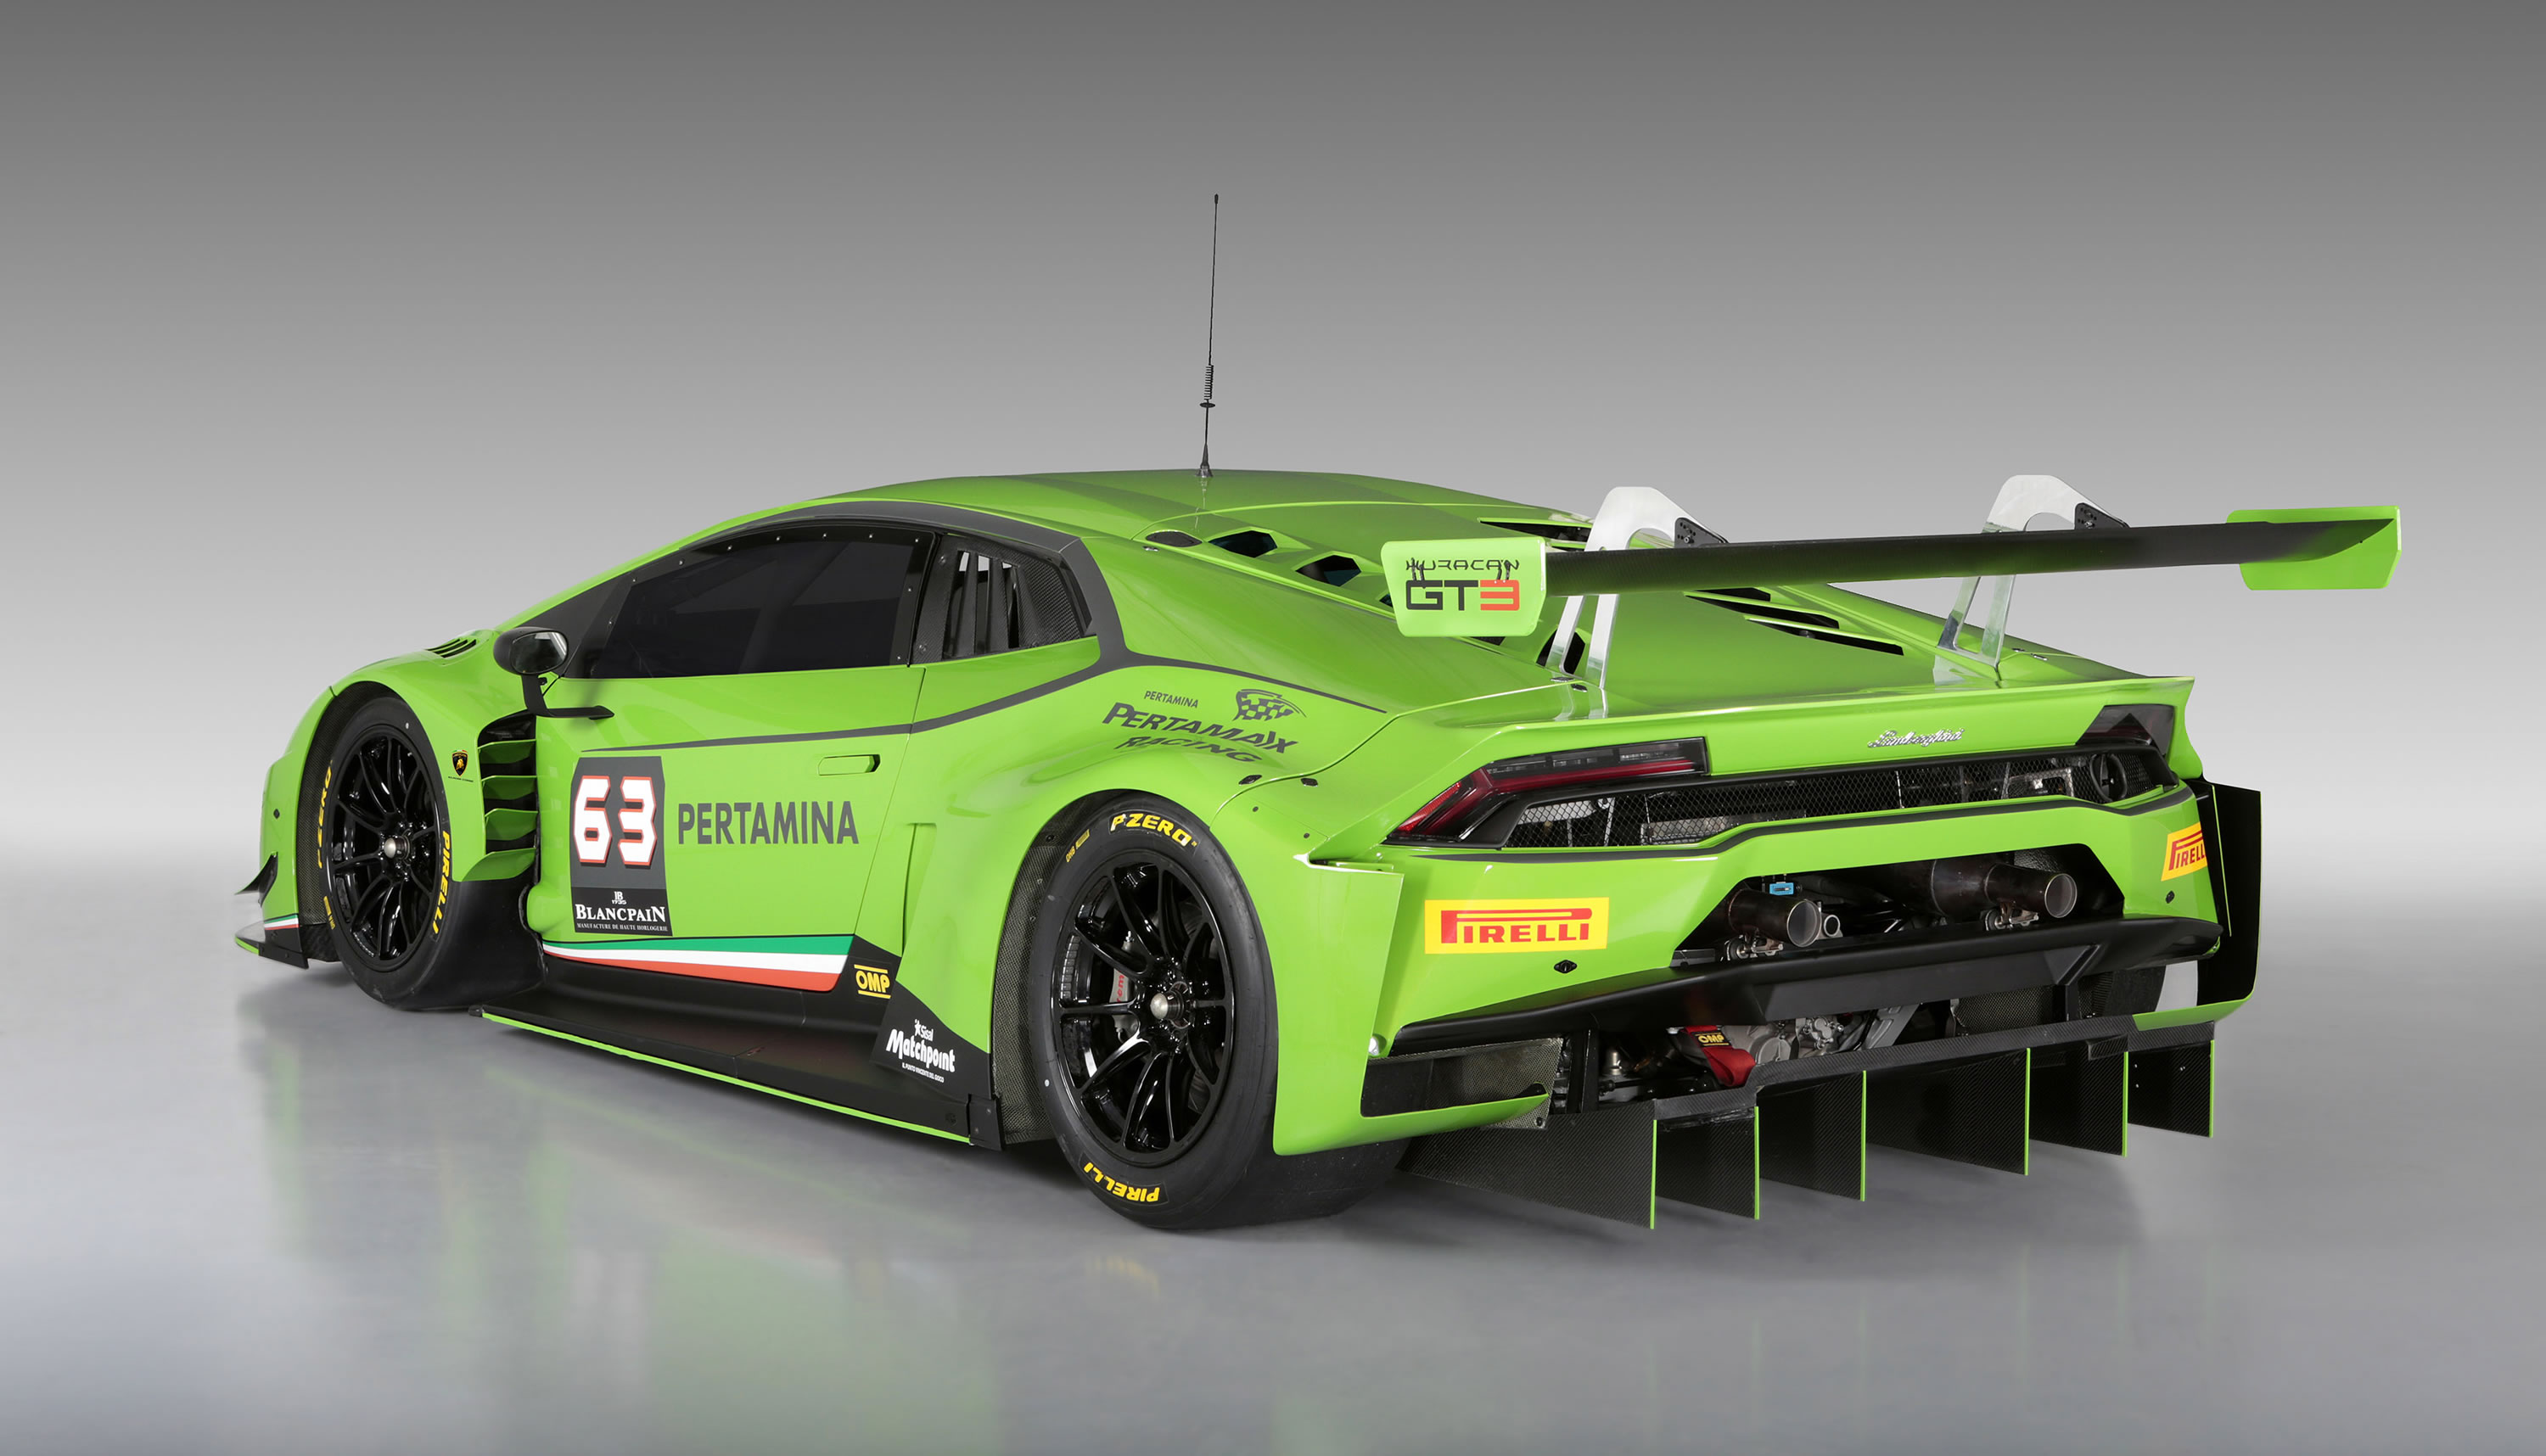 2015 lamborghini huracan gt3 race car photos specs and review rs. Black Bedroom Furniture Sets. Home Design Ideas